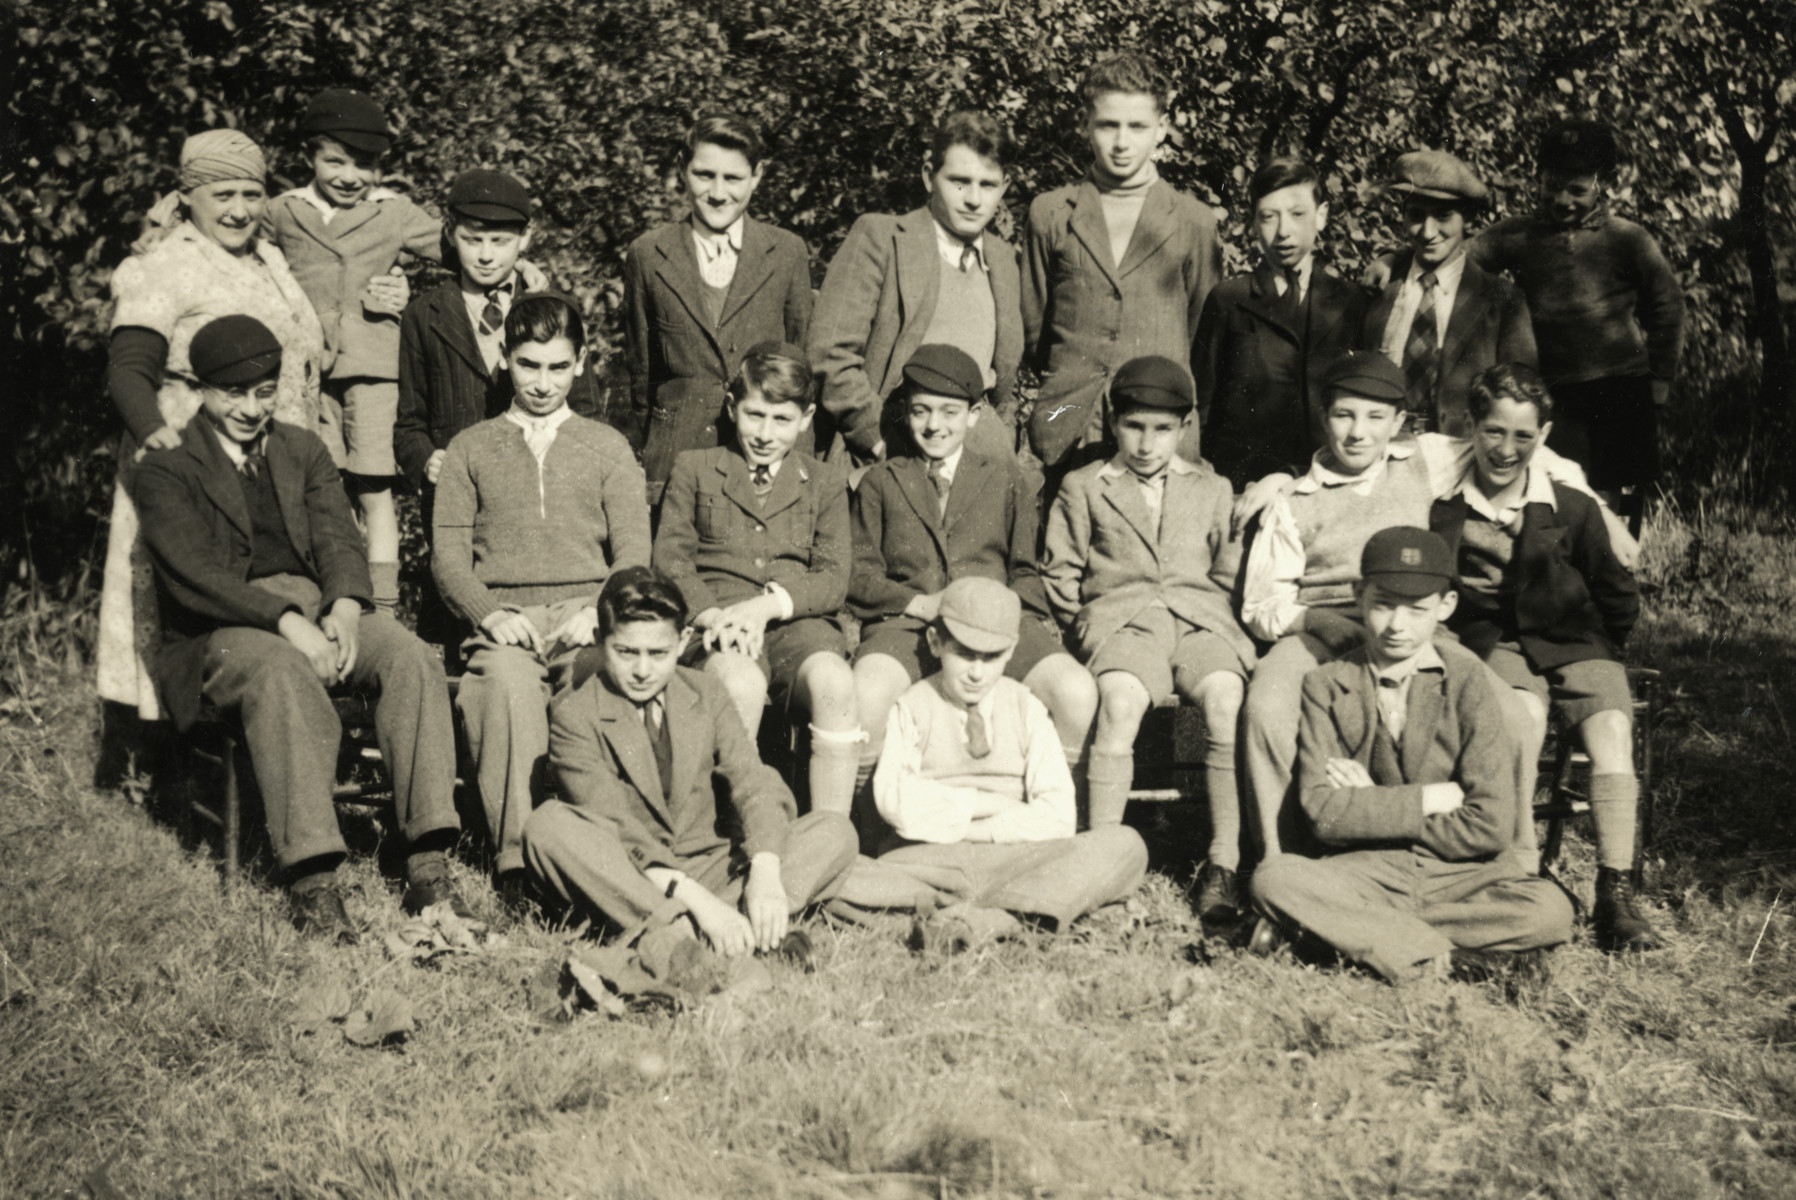 Portrait of school boys in Chase Terrace near Birmingham.  Gus Meyer who had come to England on a Kindertransport is in the top row, fourth from the left.